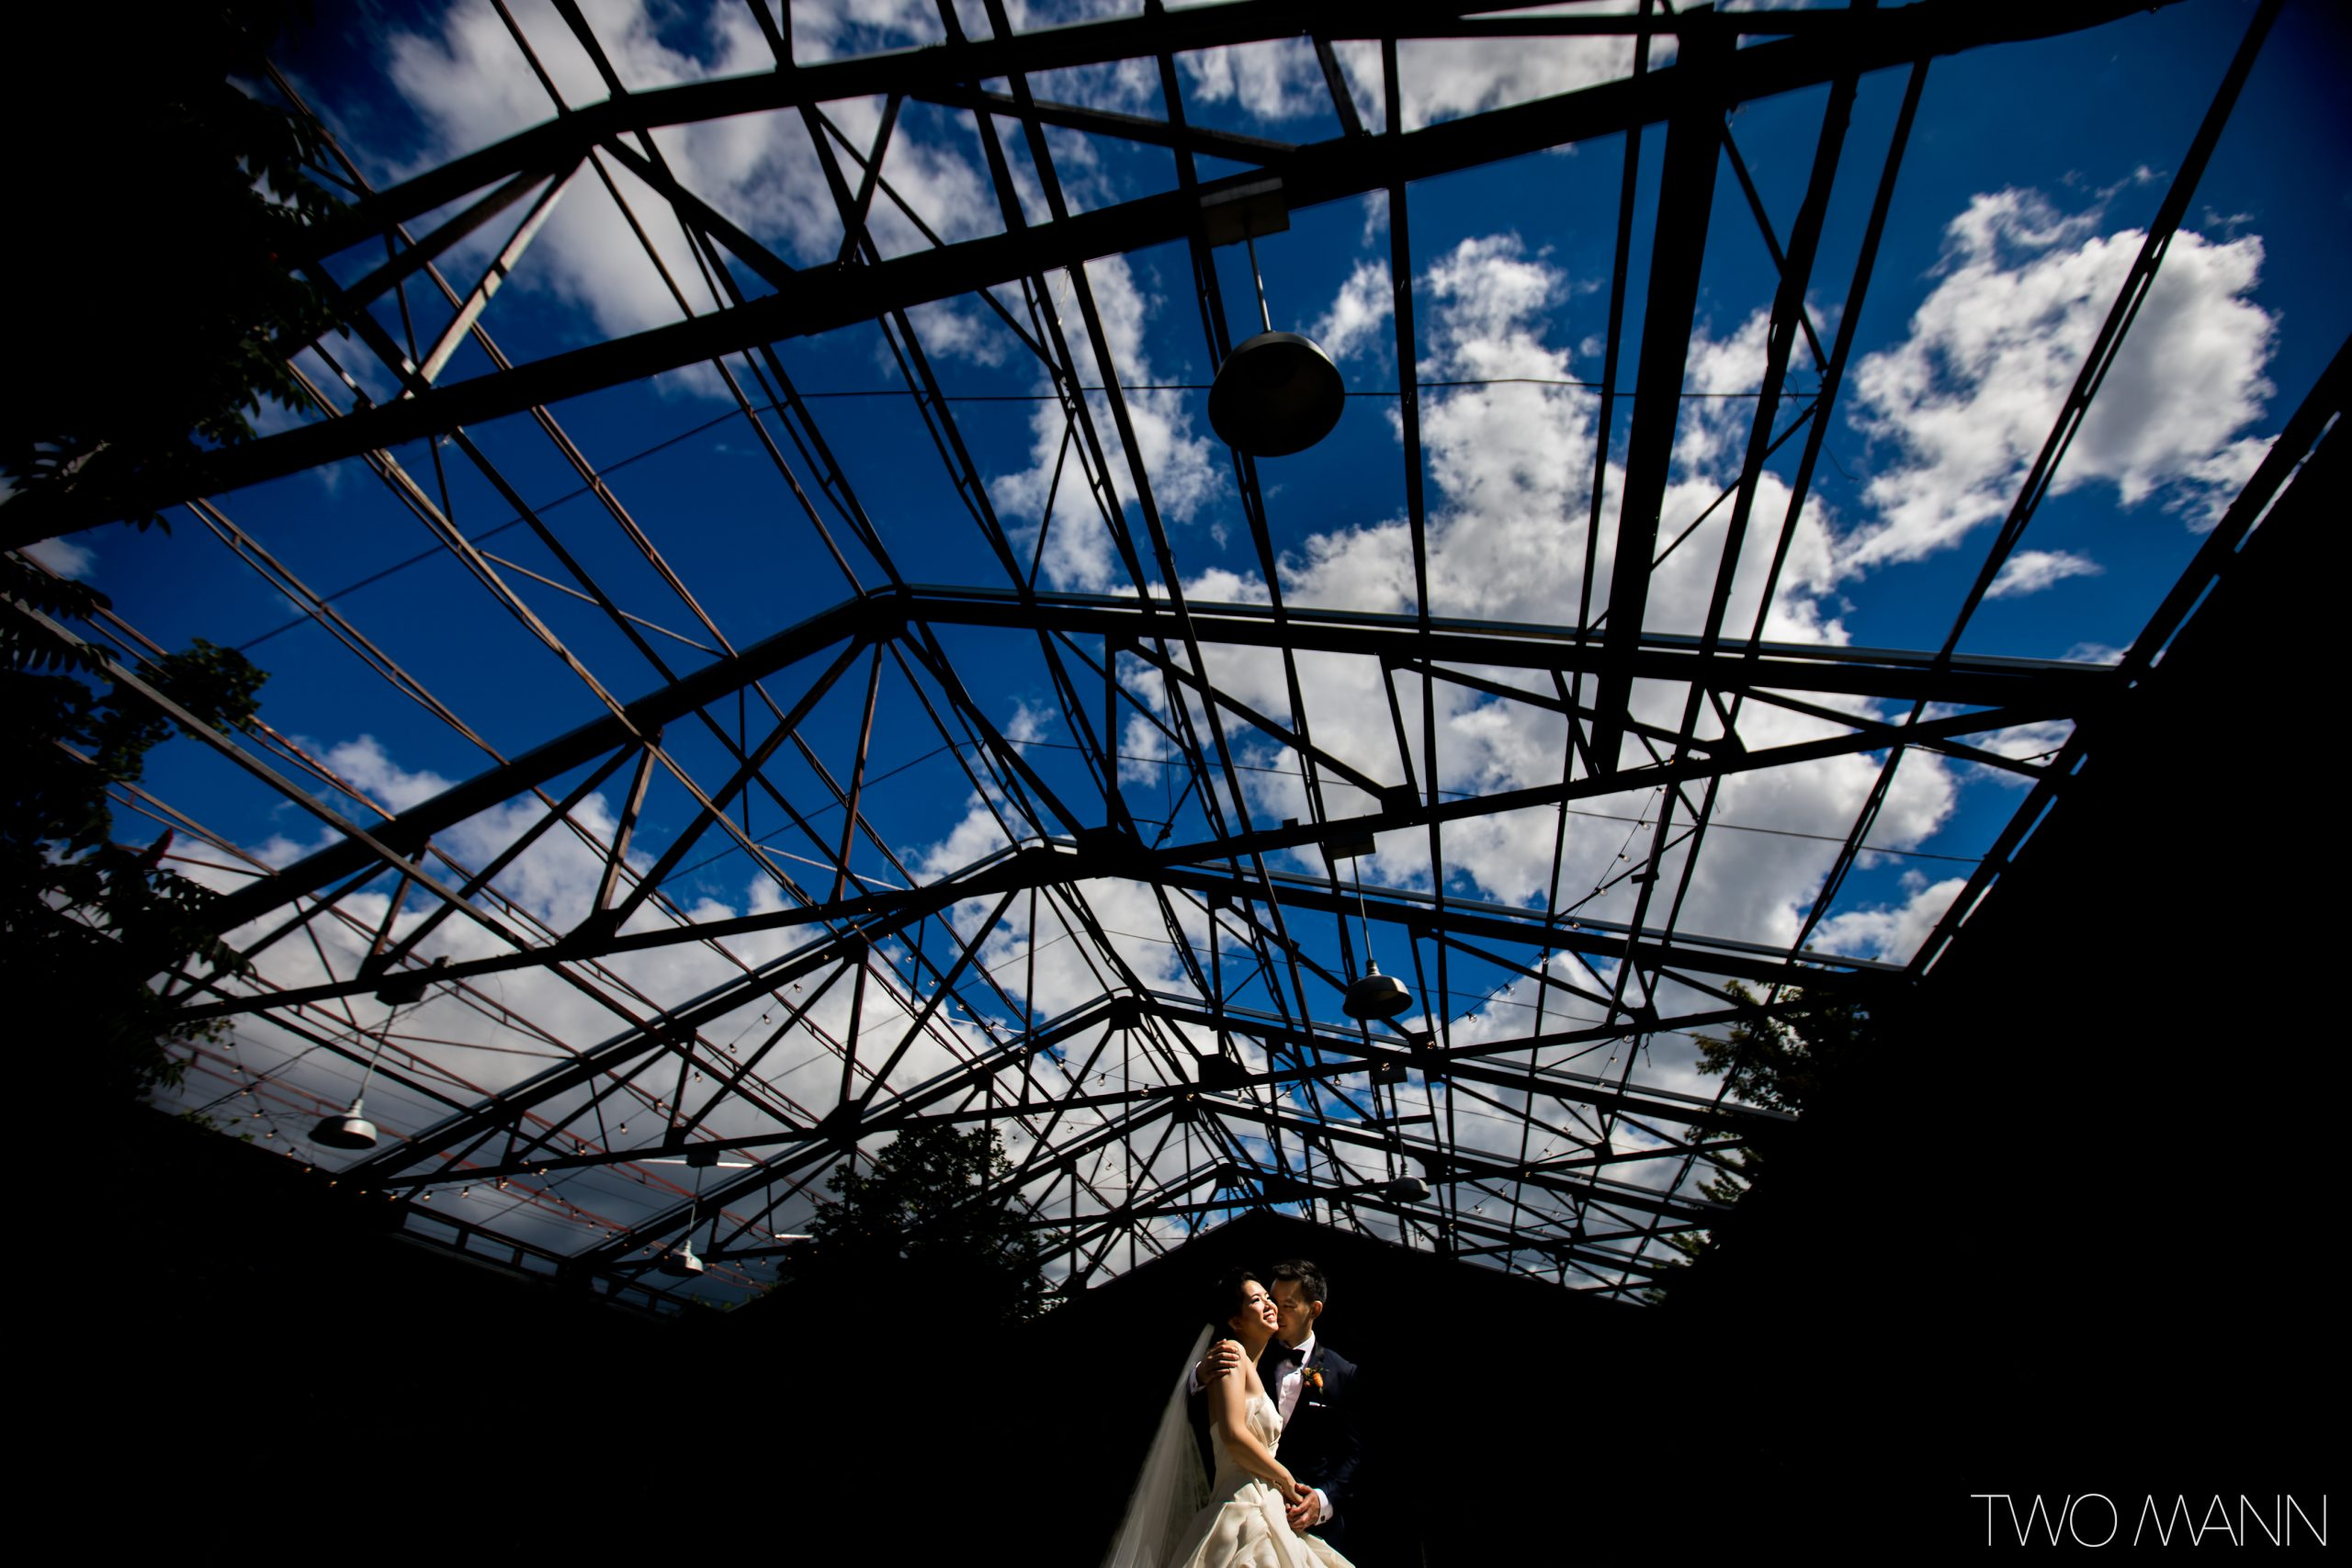 bride and groom wedding portrait beneath open architectural roof and blue sky